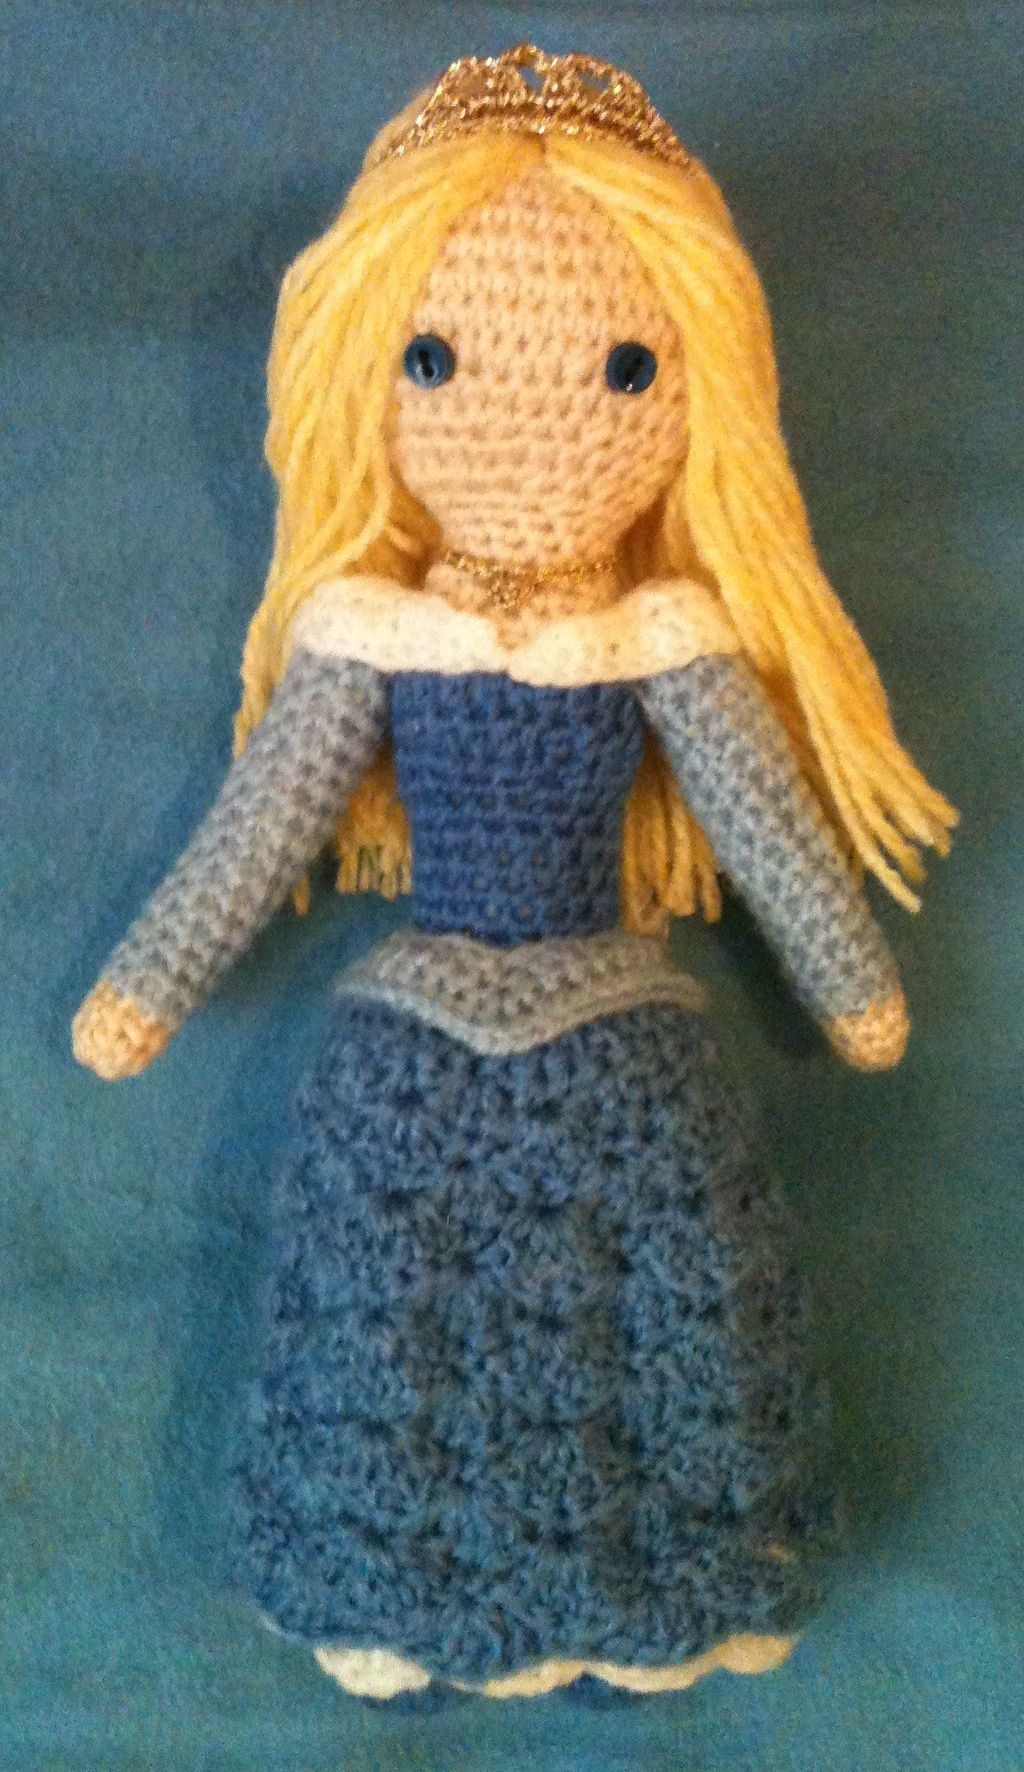 Amigurumi Disney Princess : Princess amigurumi - Aurora Things To Make Someday ...